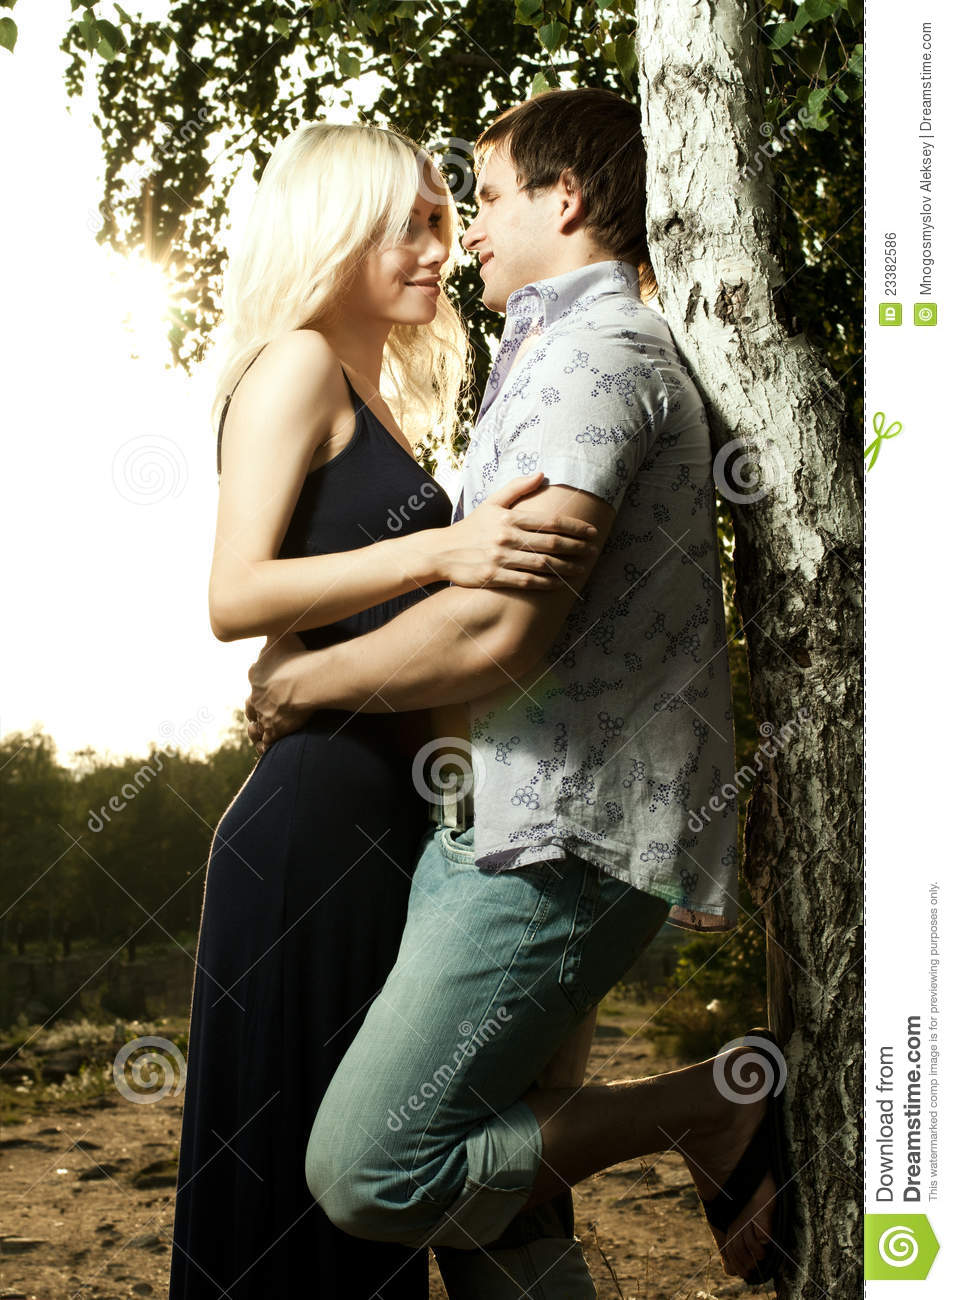 Couple Images Stock Pictures Royalty Free Couple Photos | Tattoo ...